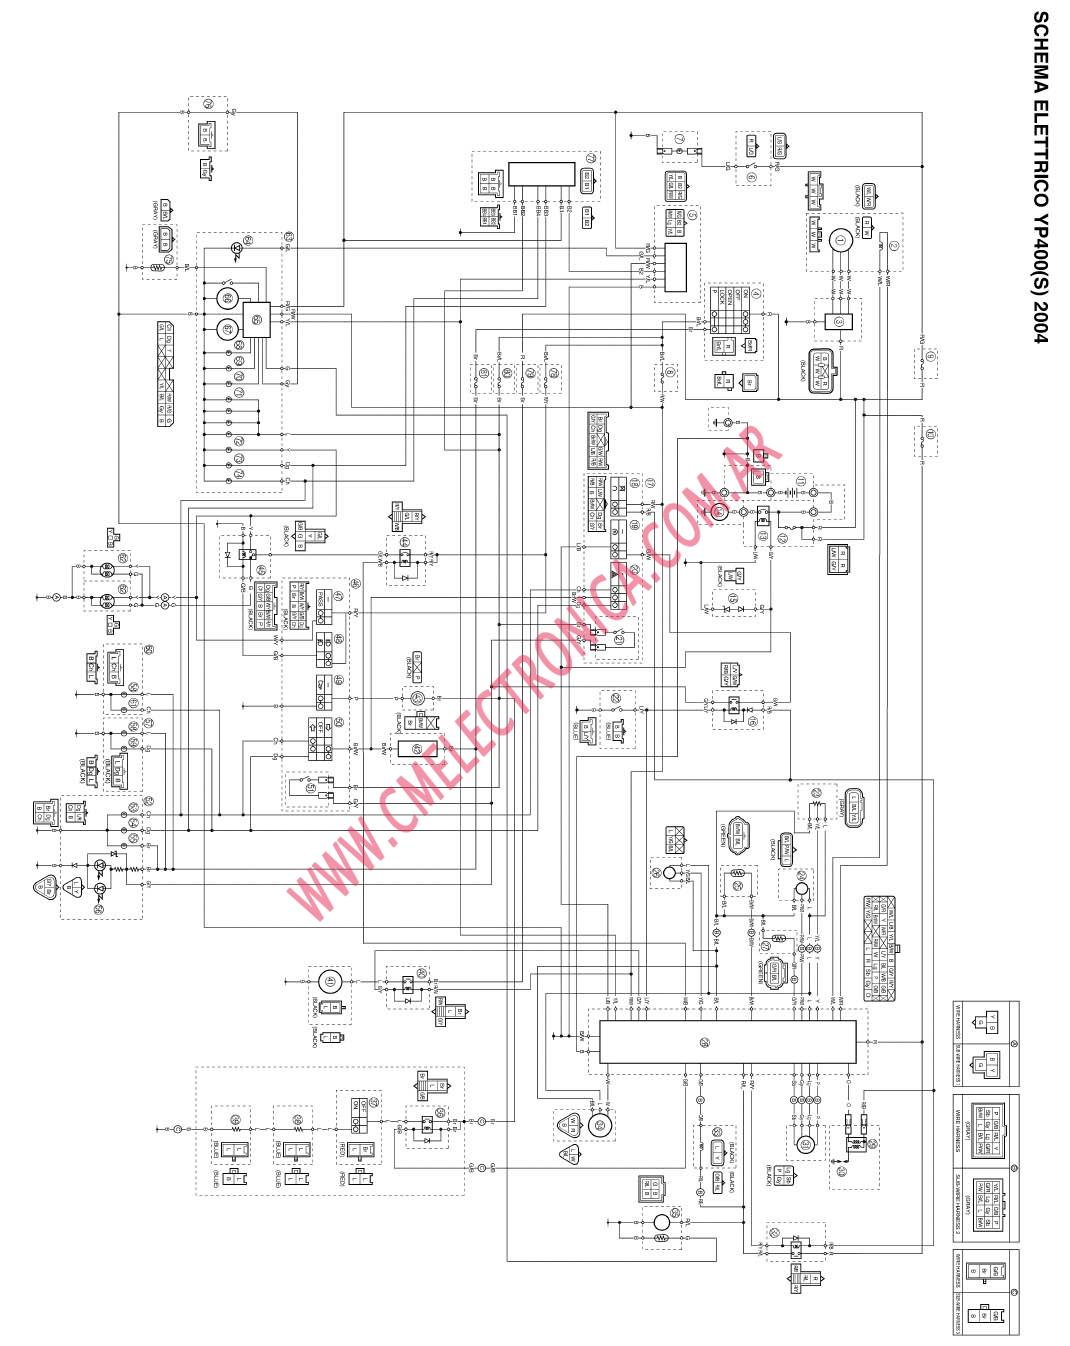 Gn400 Wiring Diagram